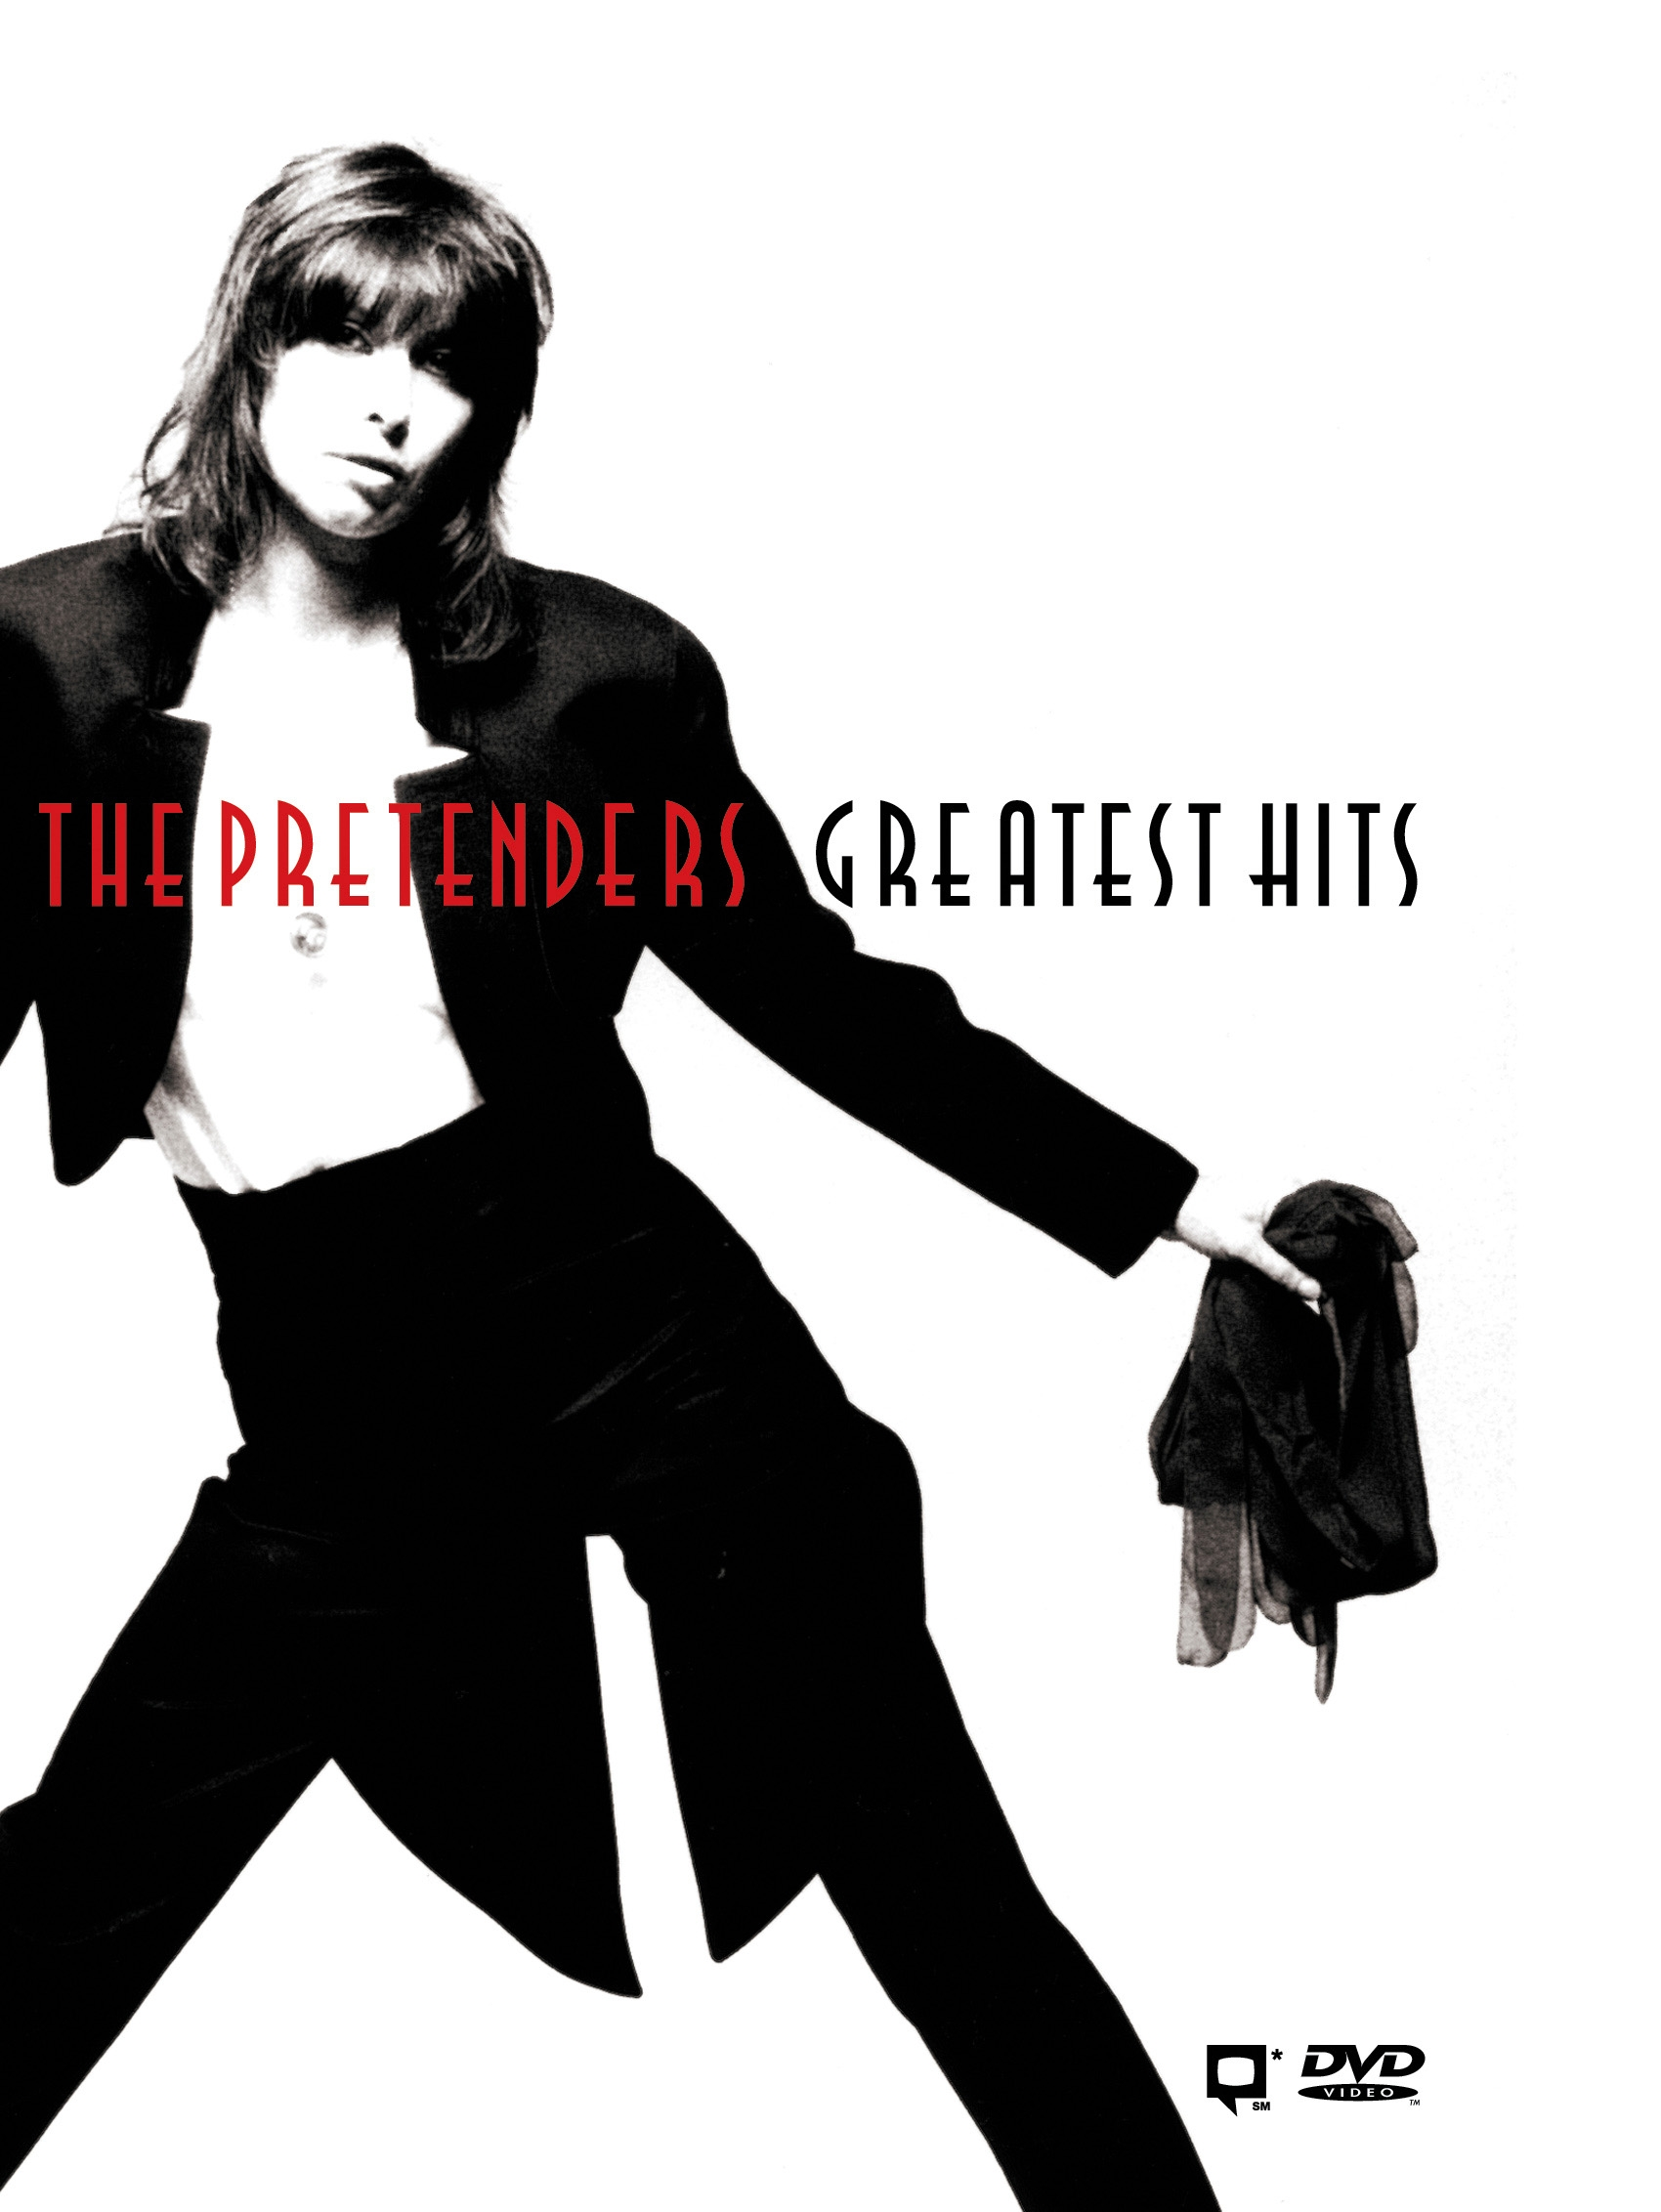 The Pretenders: Greatest hits